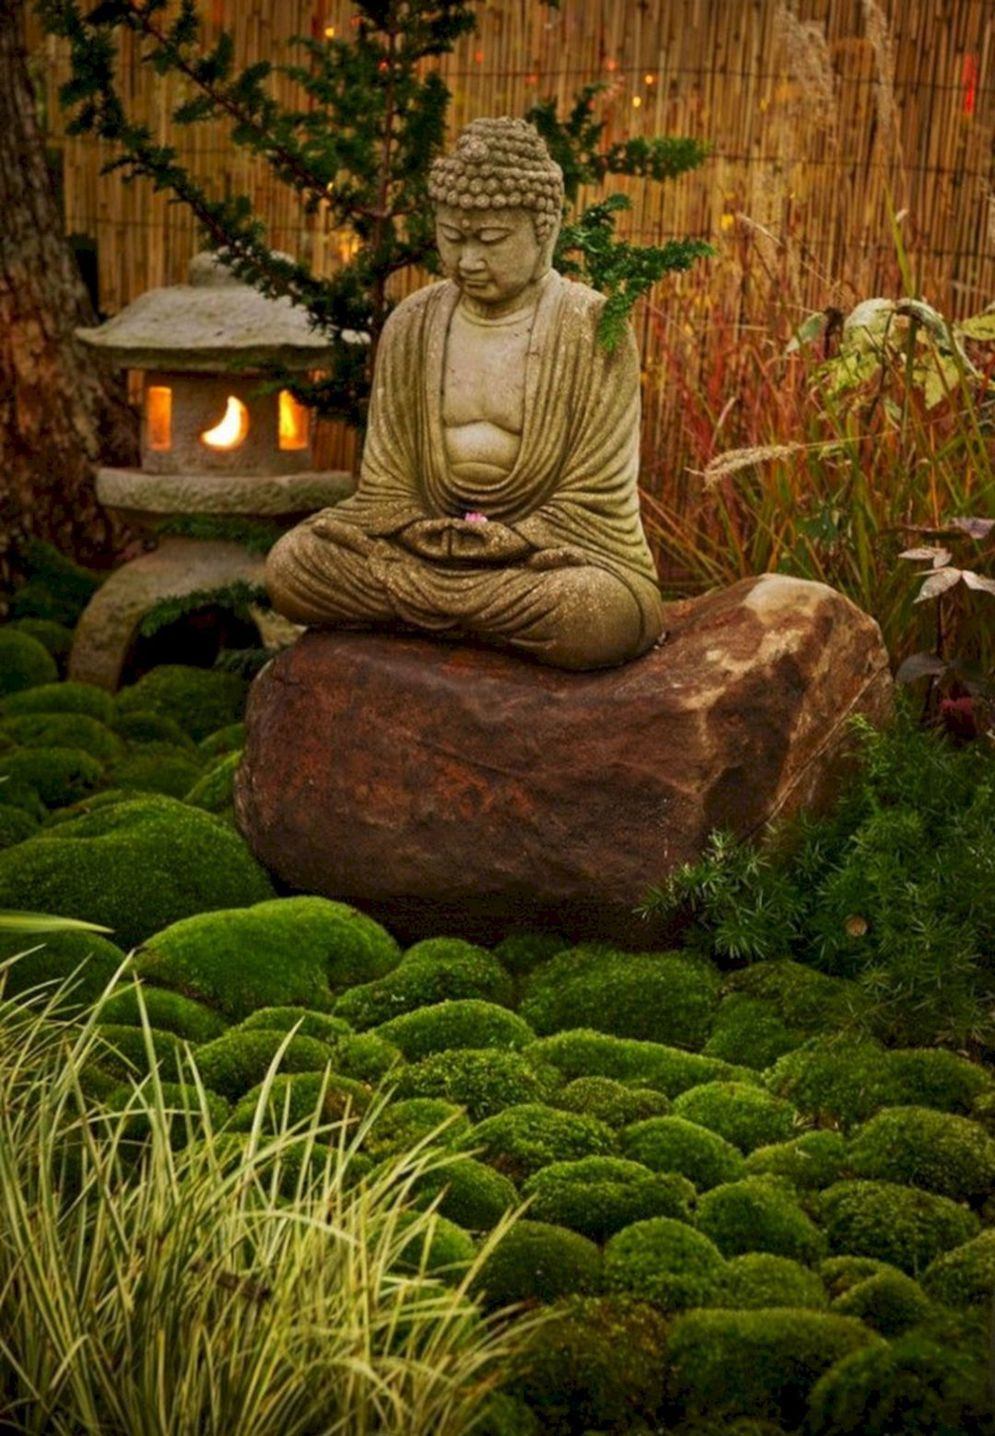 Green outdoor ideas with calming vibes from Zen garden style showing harmonious and balanced various natural elements Image 29